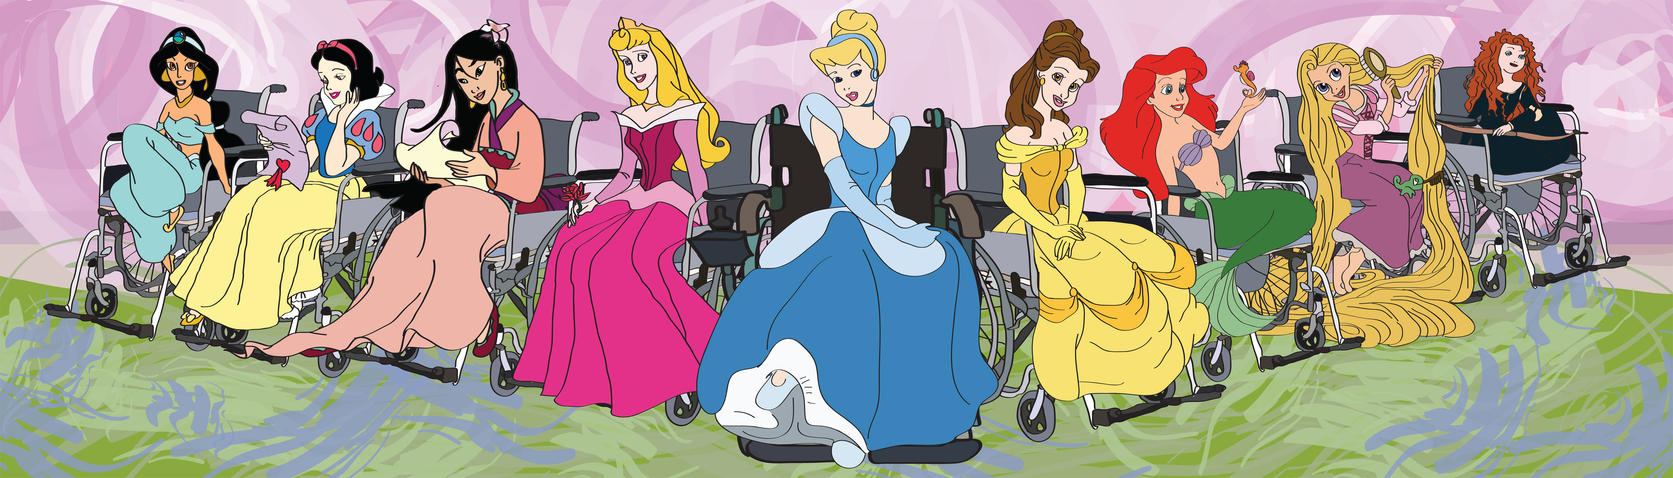 Disney Princesses in Wheel Chairs by Knives420